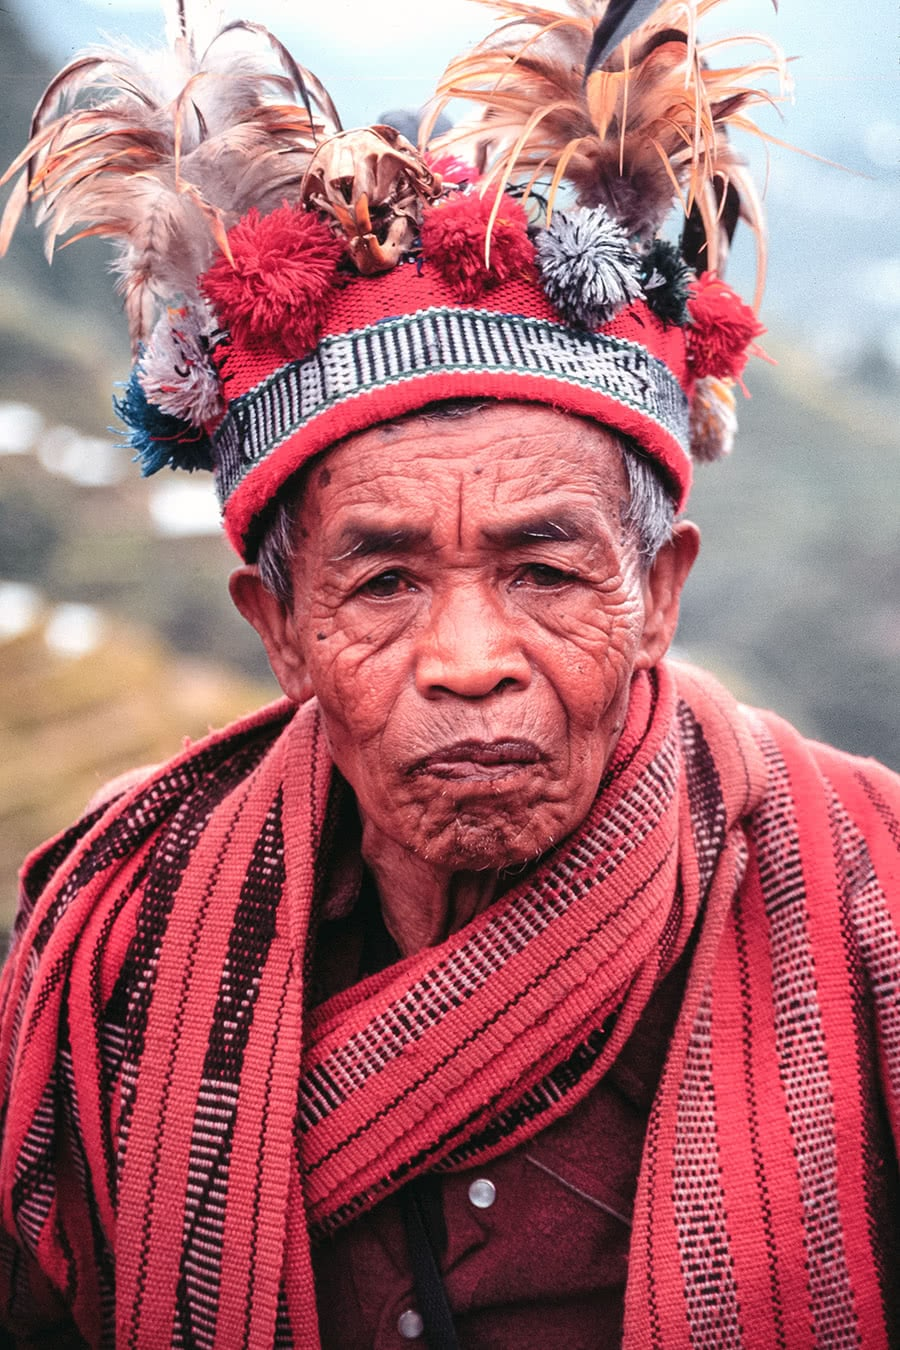 A man from the Ifugao tribe in Banaue, Philippines, wearing their traditional attire.